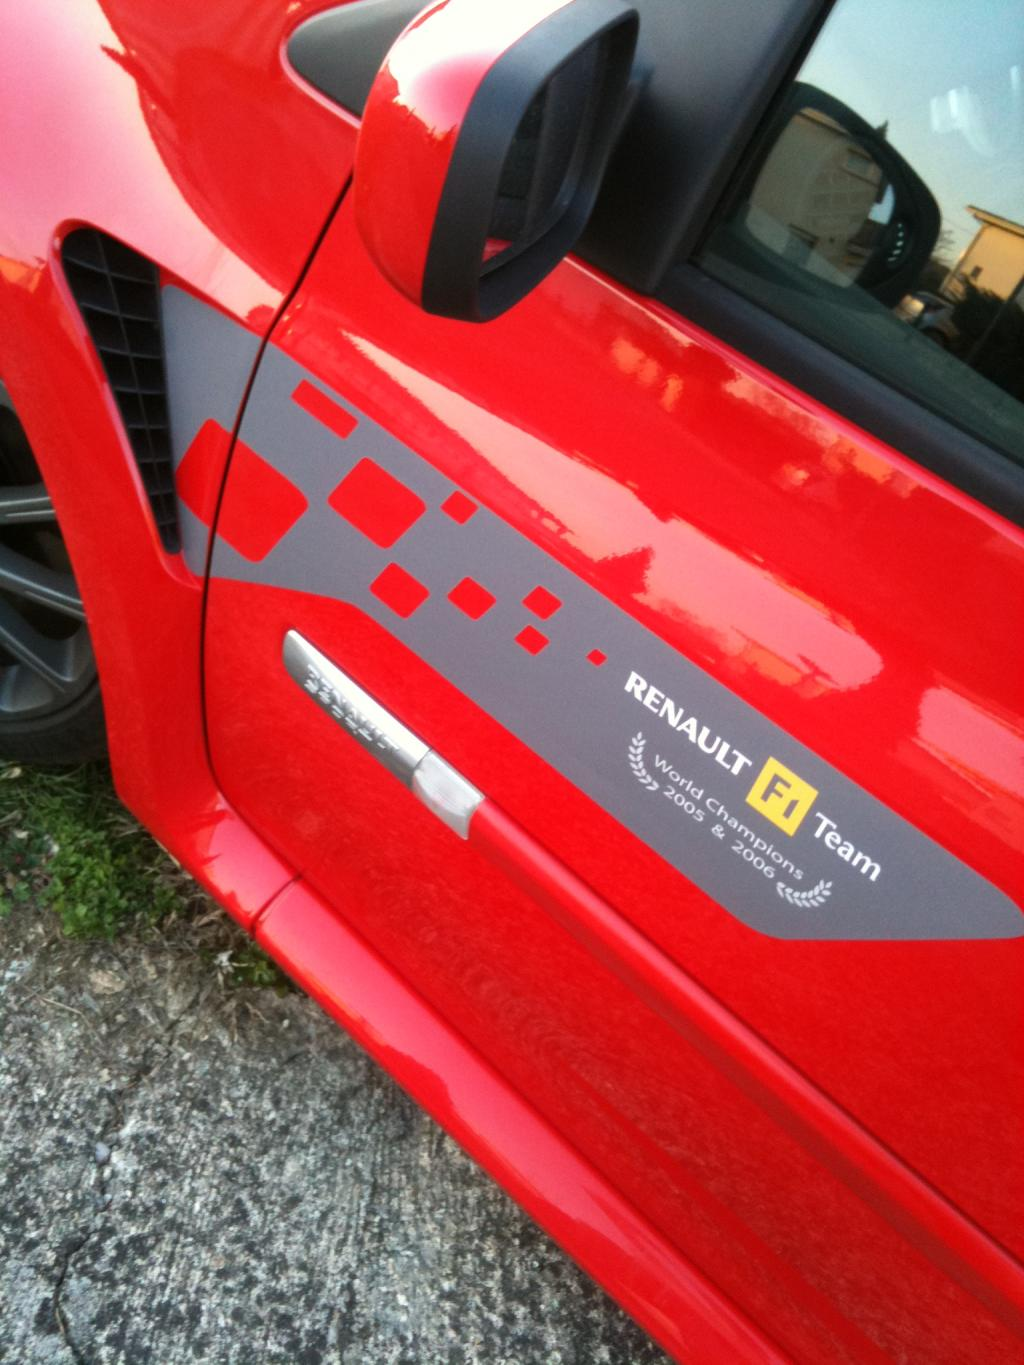 Vends Sticker Renault Replica - Stripping - et autres modeles  Img_0714-2644be9